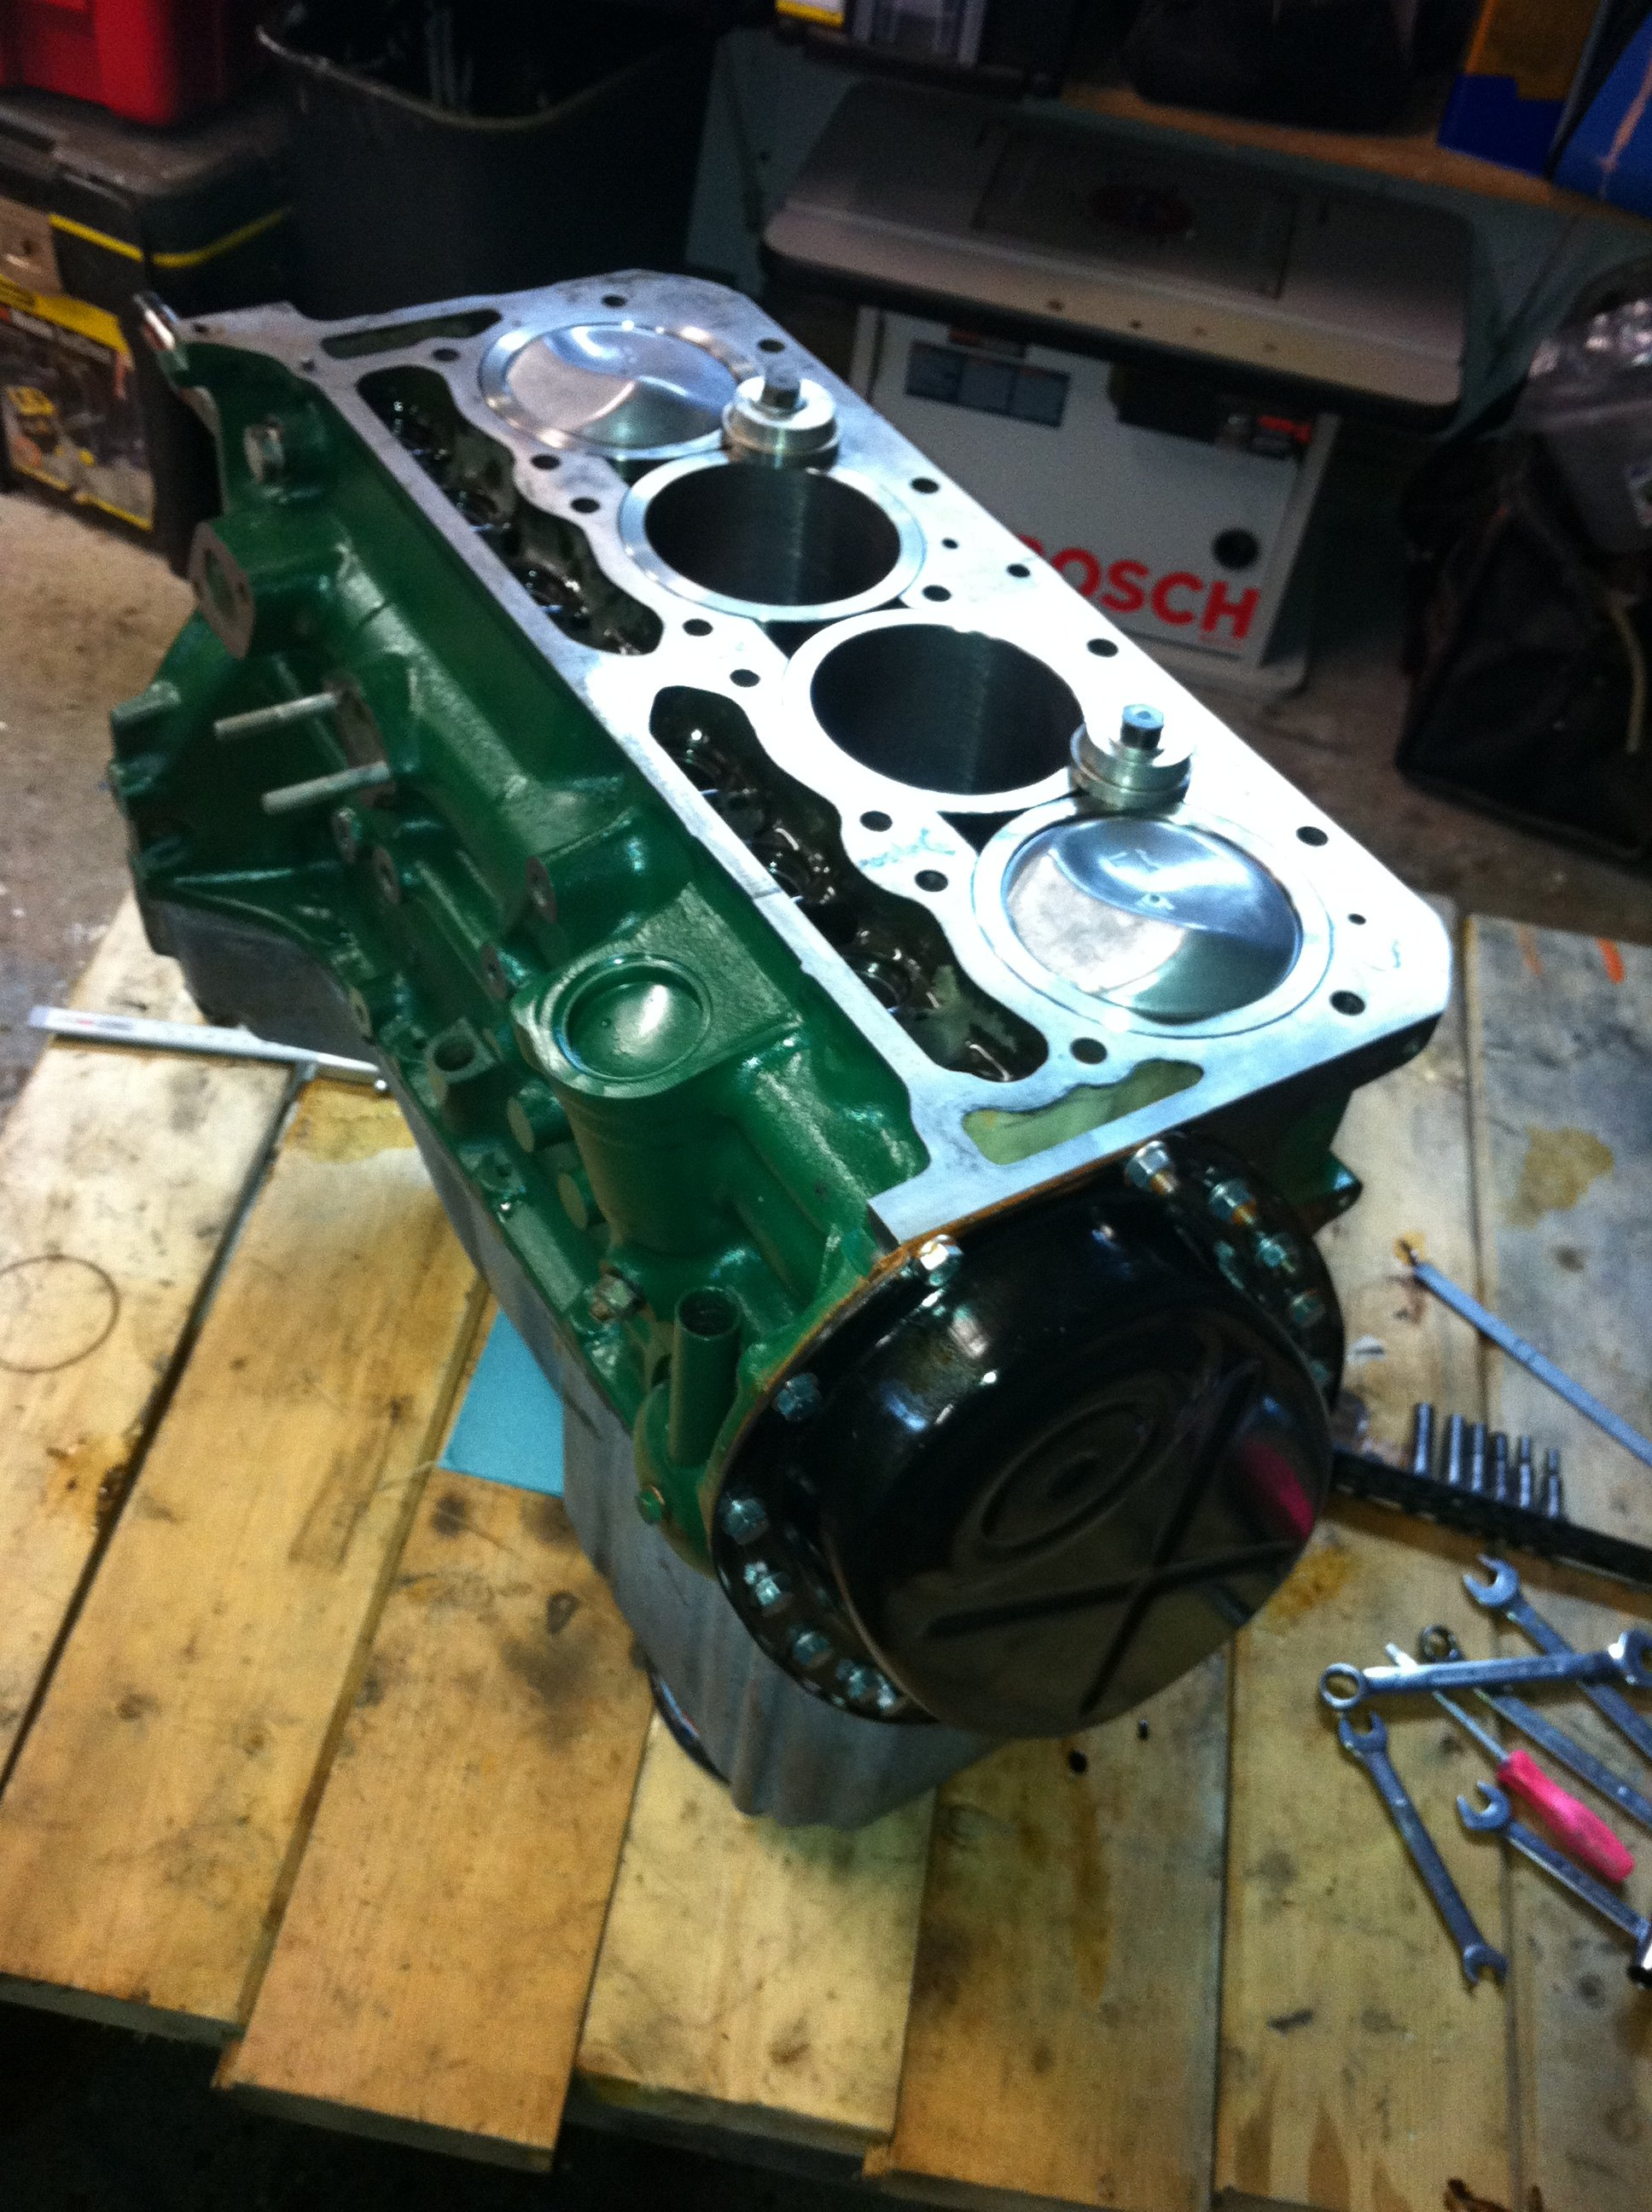 Timing cover in place - enough work for one day, time for a glass of wine